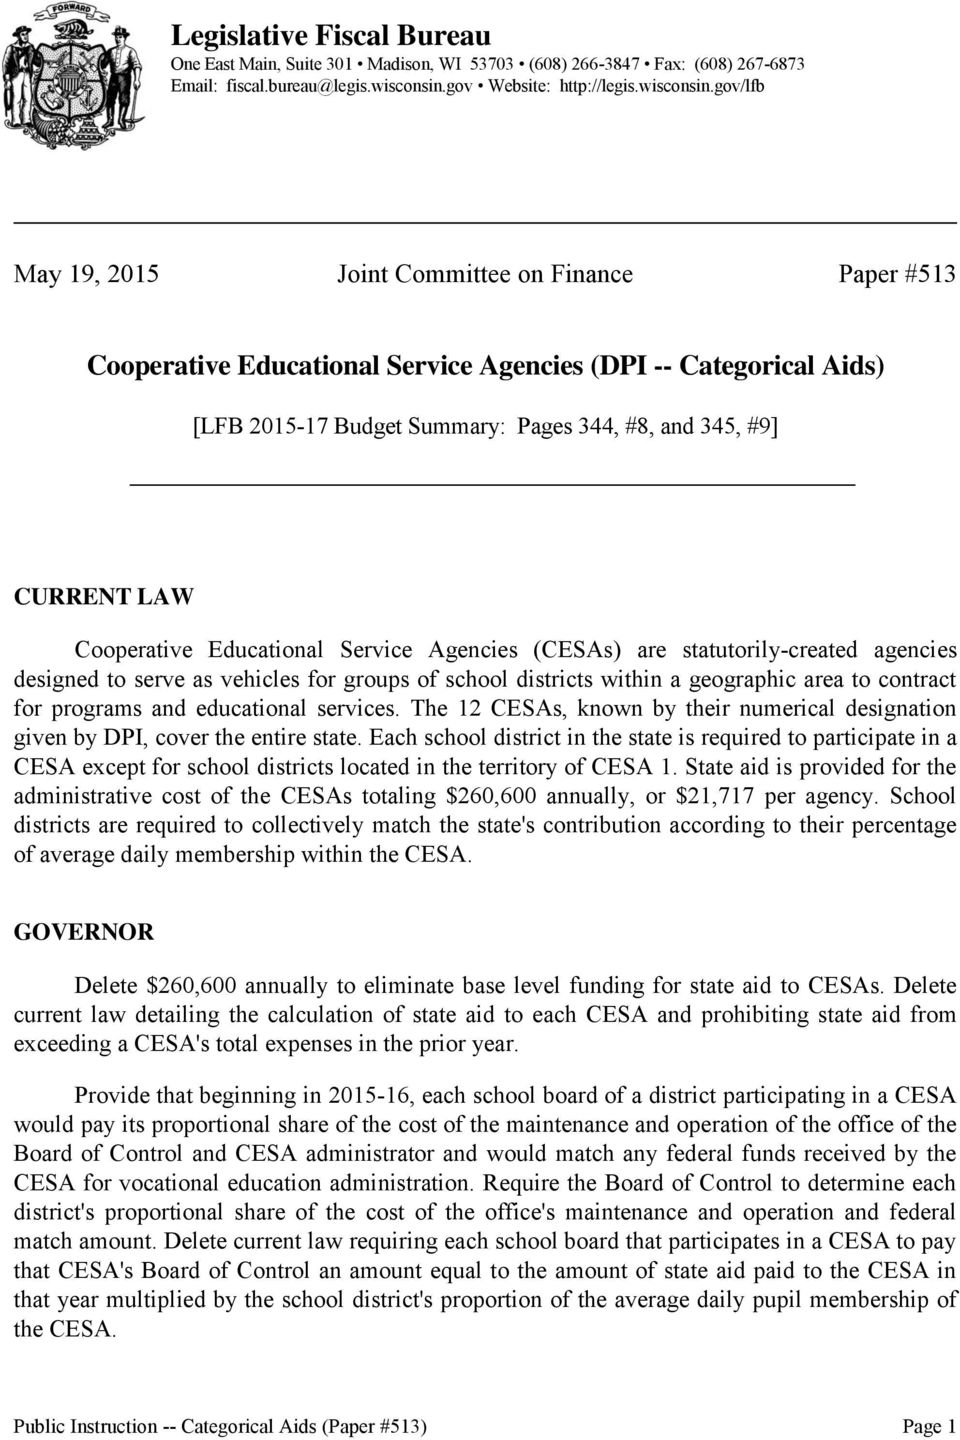 gov/lfb May 19, 2015 Joint Committee on Finance Paper #513 Cooperative Educational Service Agencies (DPI -- Categorical Aids) [LFB 2015-17 Budget Summary: Pages 344, #8, and 345, #9] CURRENT LAW